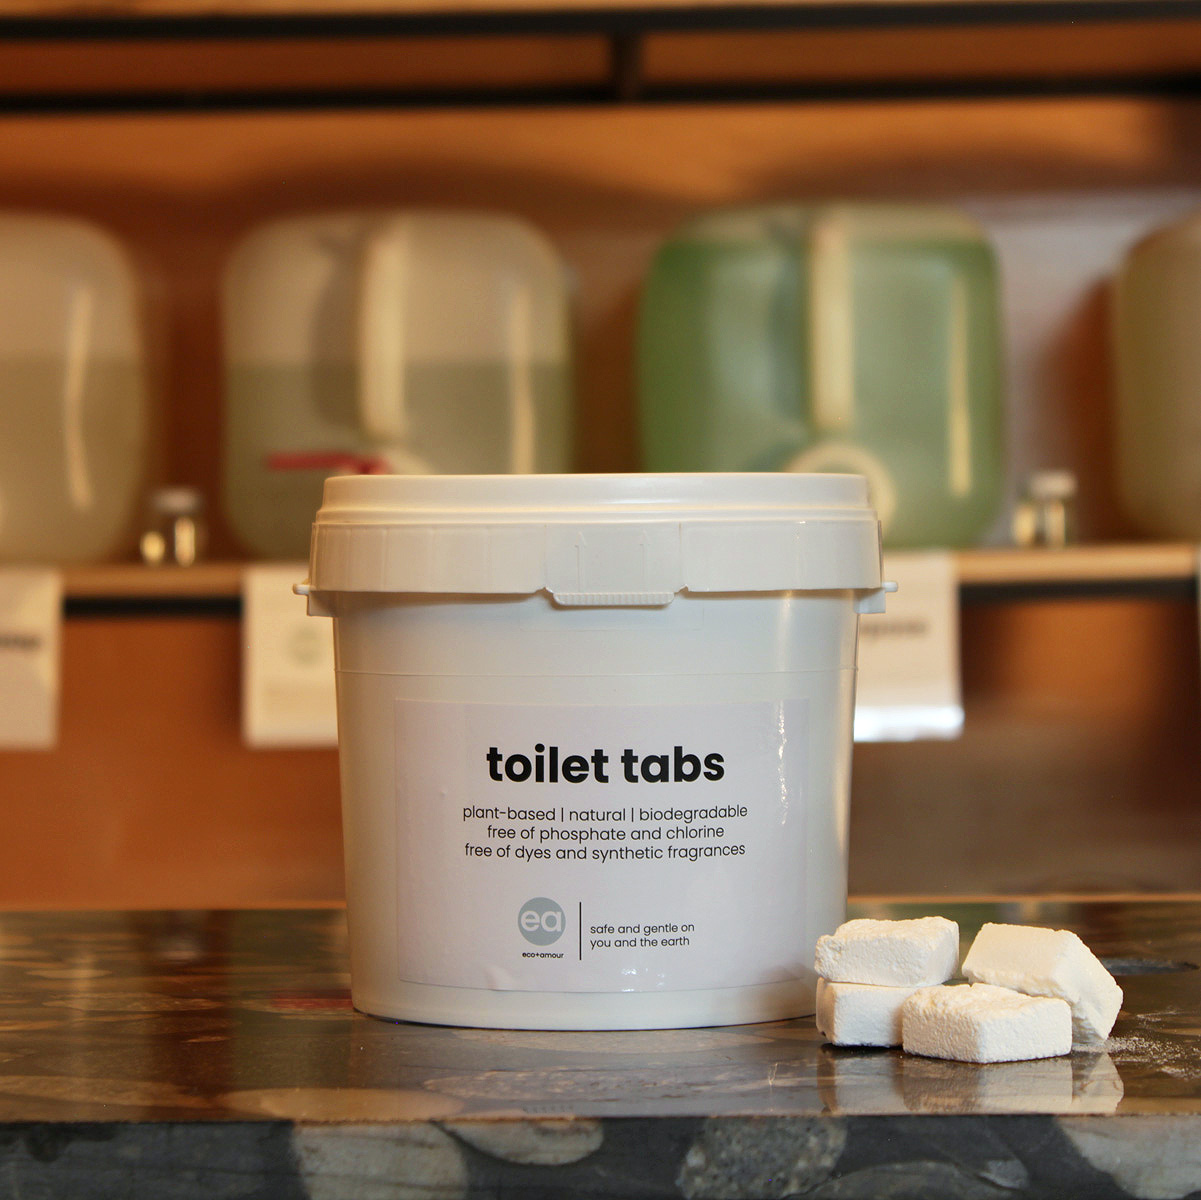 refill toilet tabs - Toronto - Pollocks Home Hardware - eco + amour